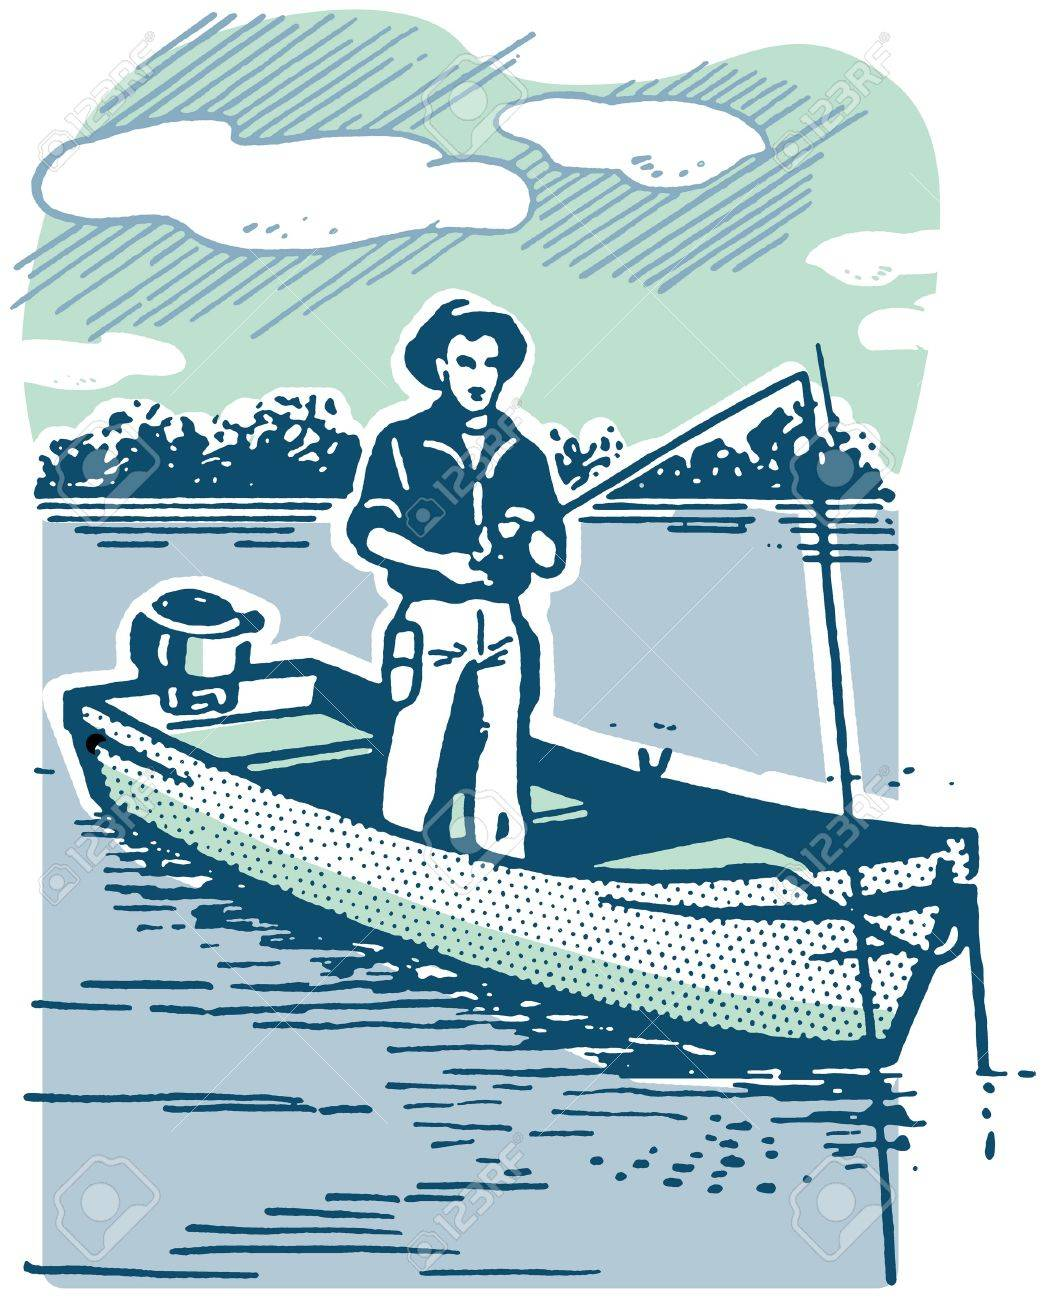 A vintage image of a man fishing Stock Photo - 14918463